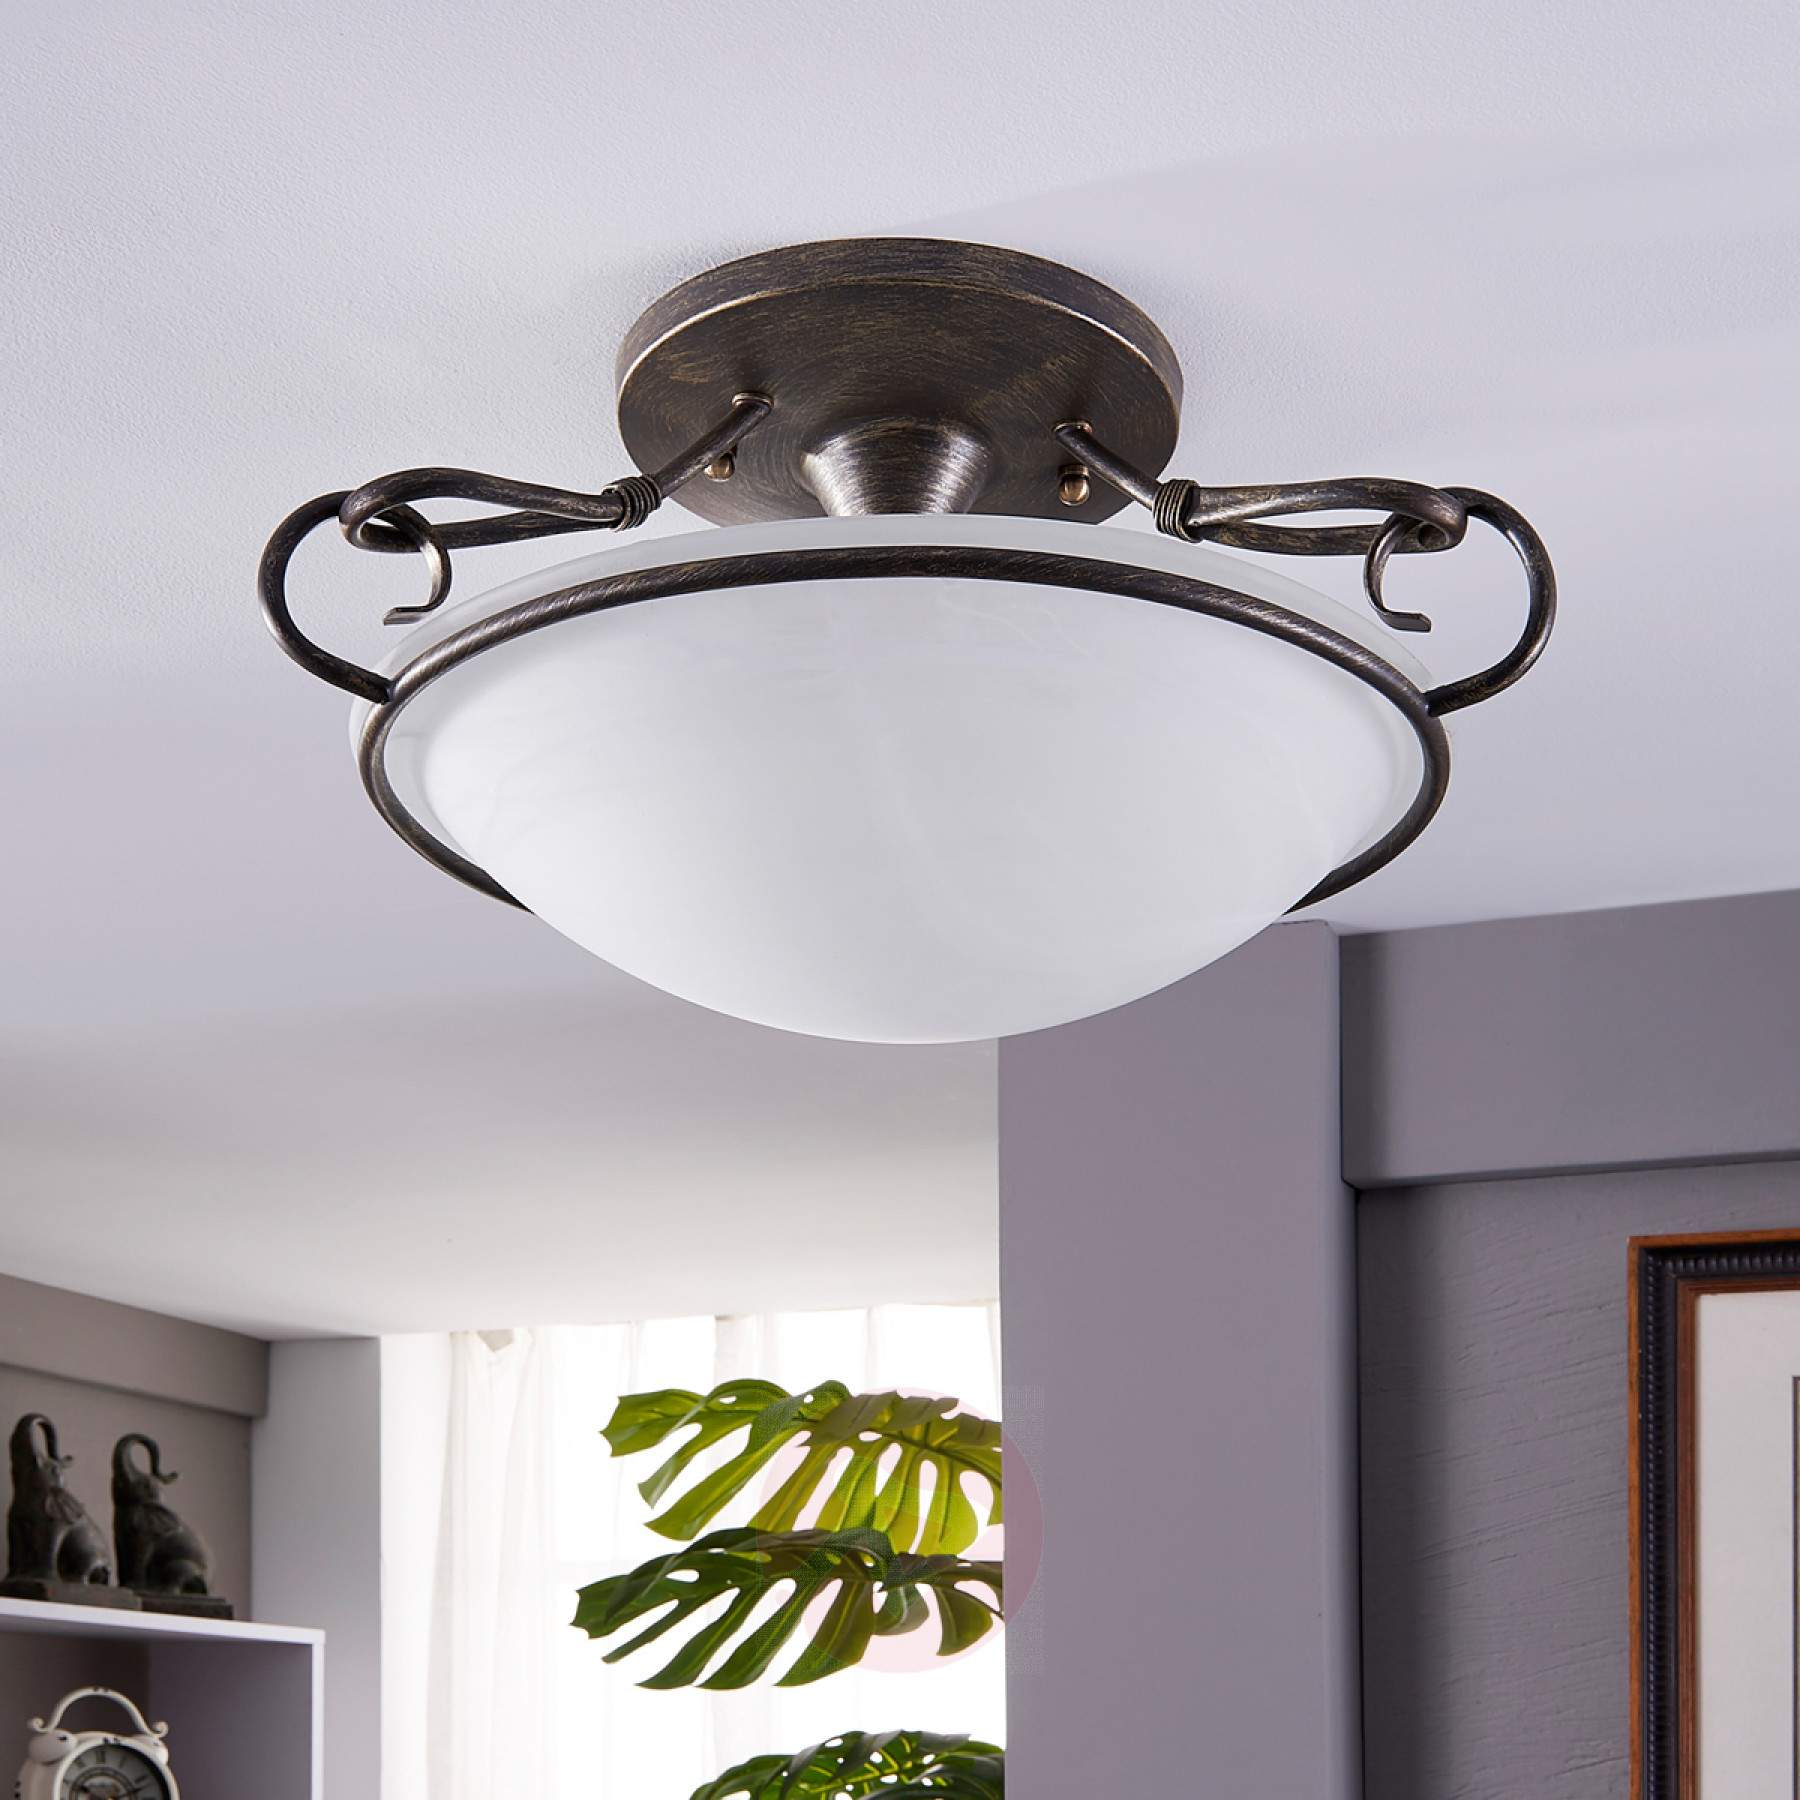 country house lighting stylish rando ceiling lamp in country-house style-9620989-03 ... SGUHDUL